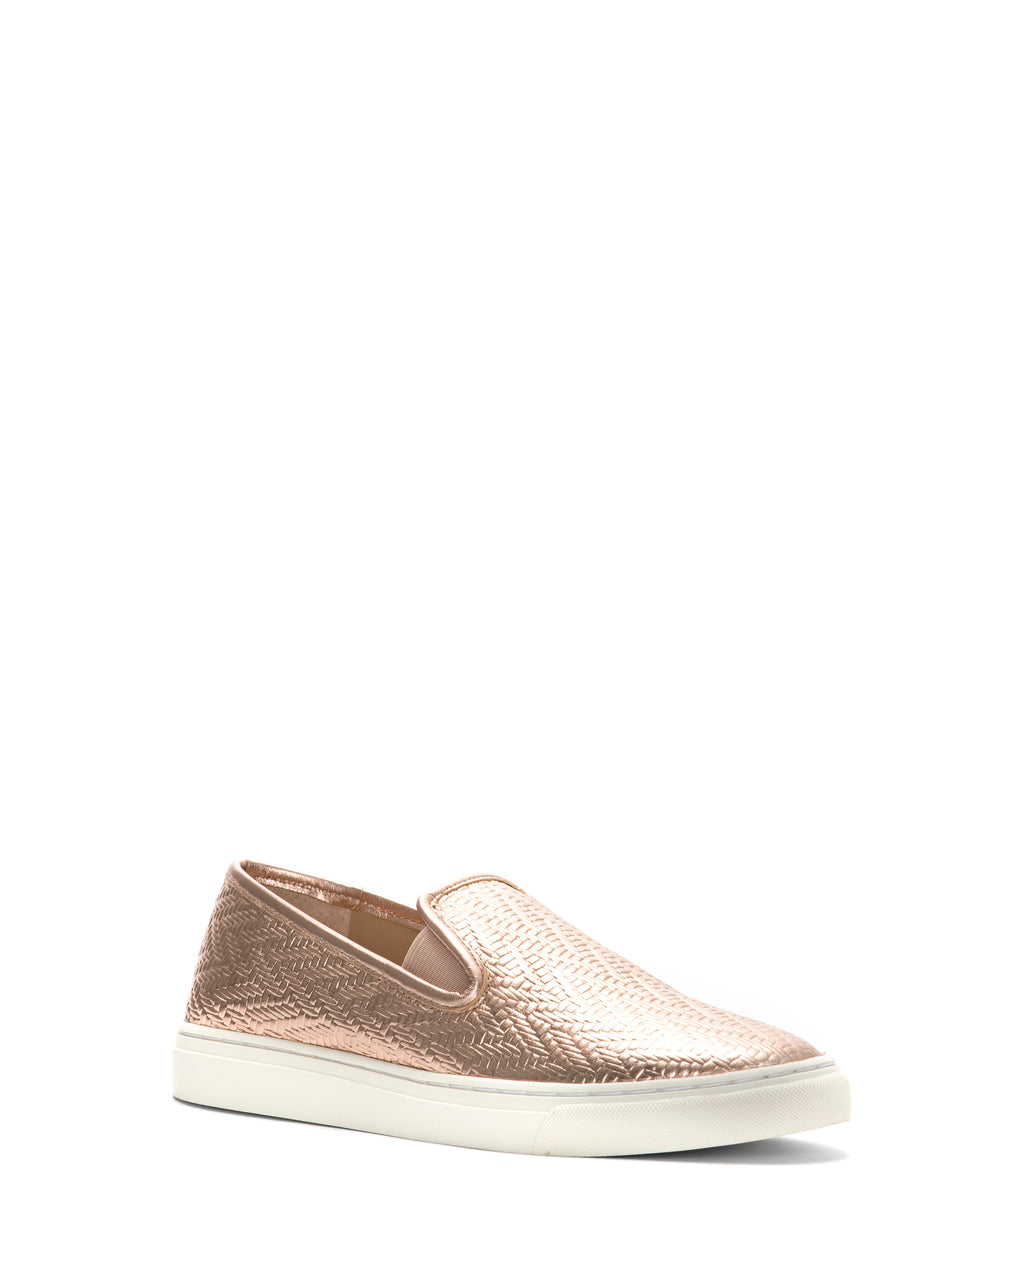 Vince Camuto Becker Shoe - Chaussures Porto